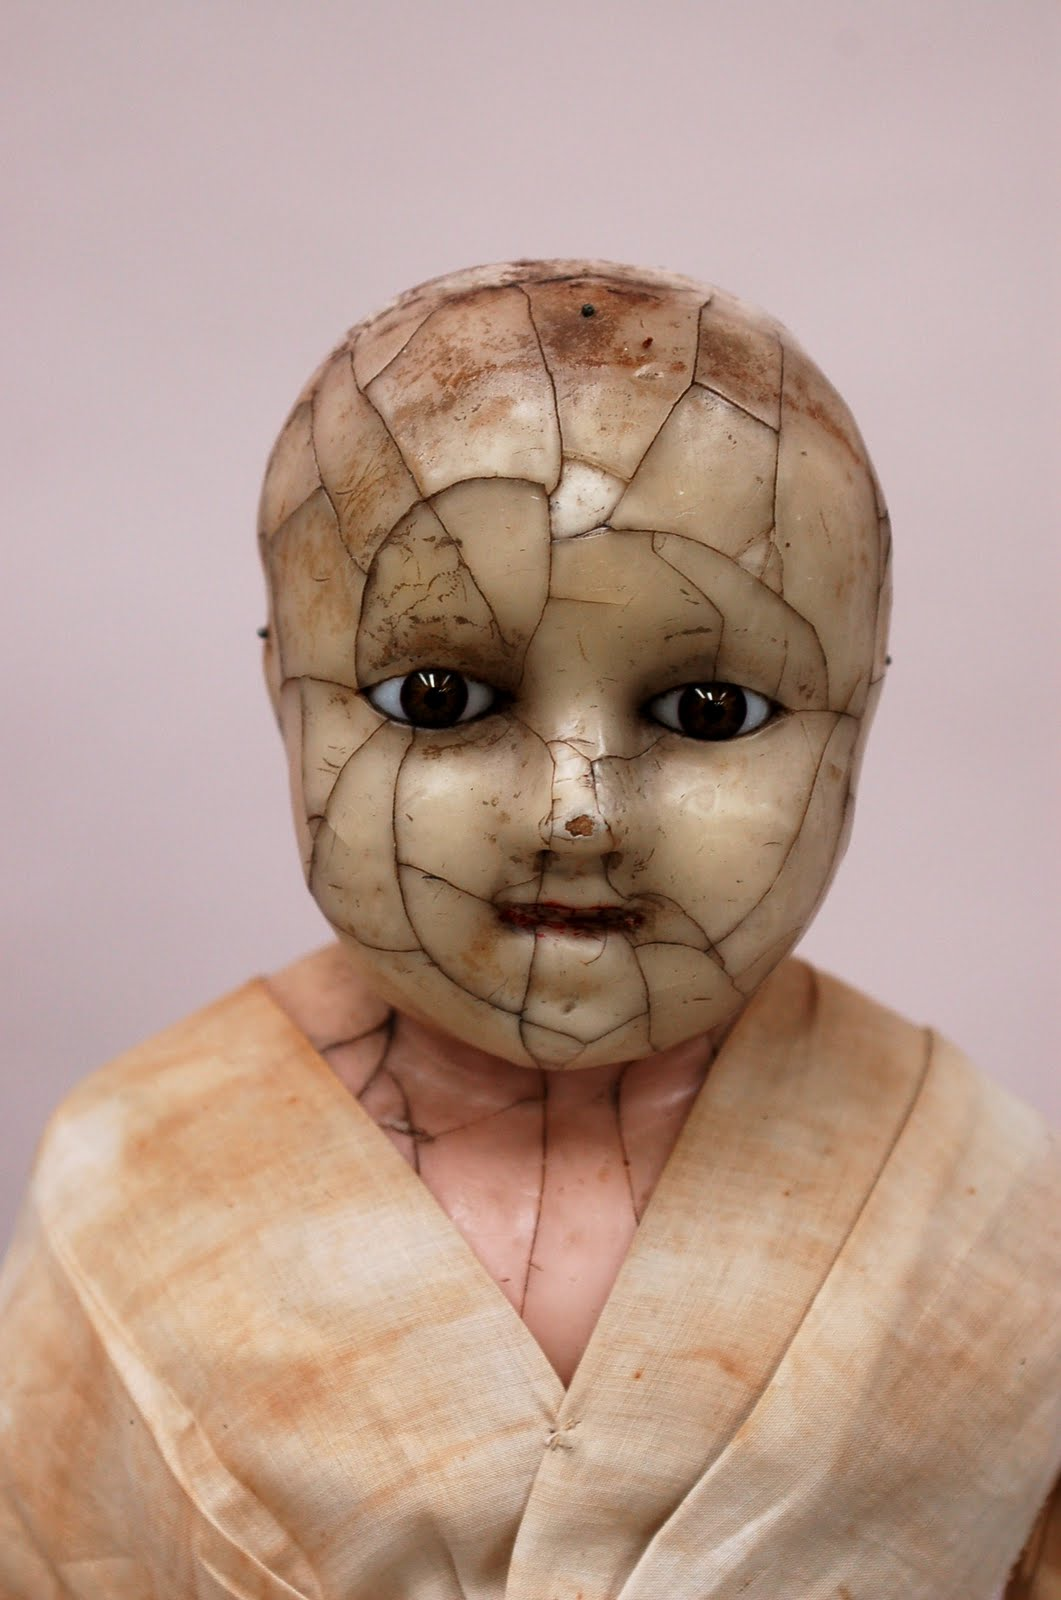 Shelburne Museum Blog: The Bazzoni Doll Goes to the Hospital #765557